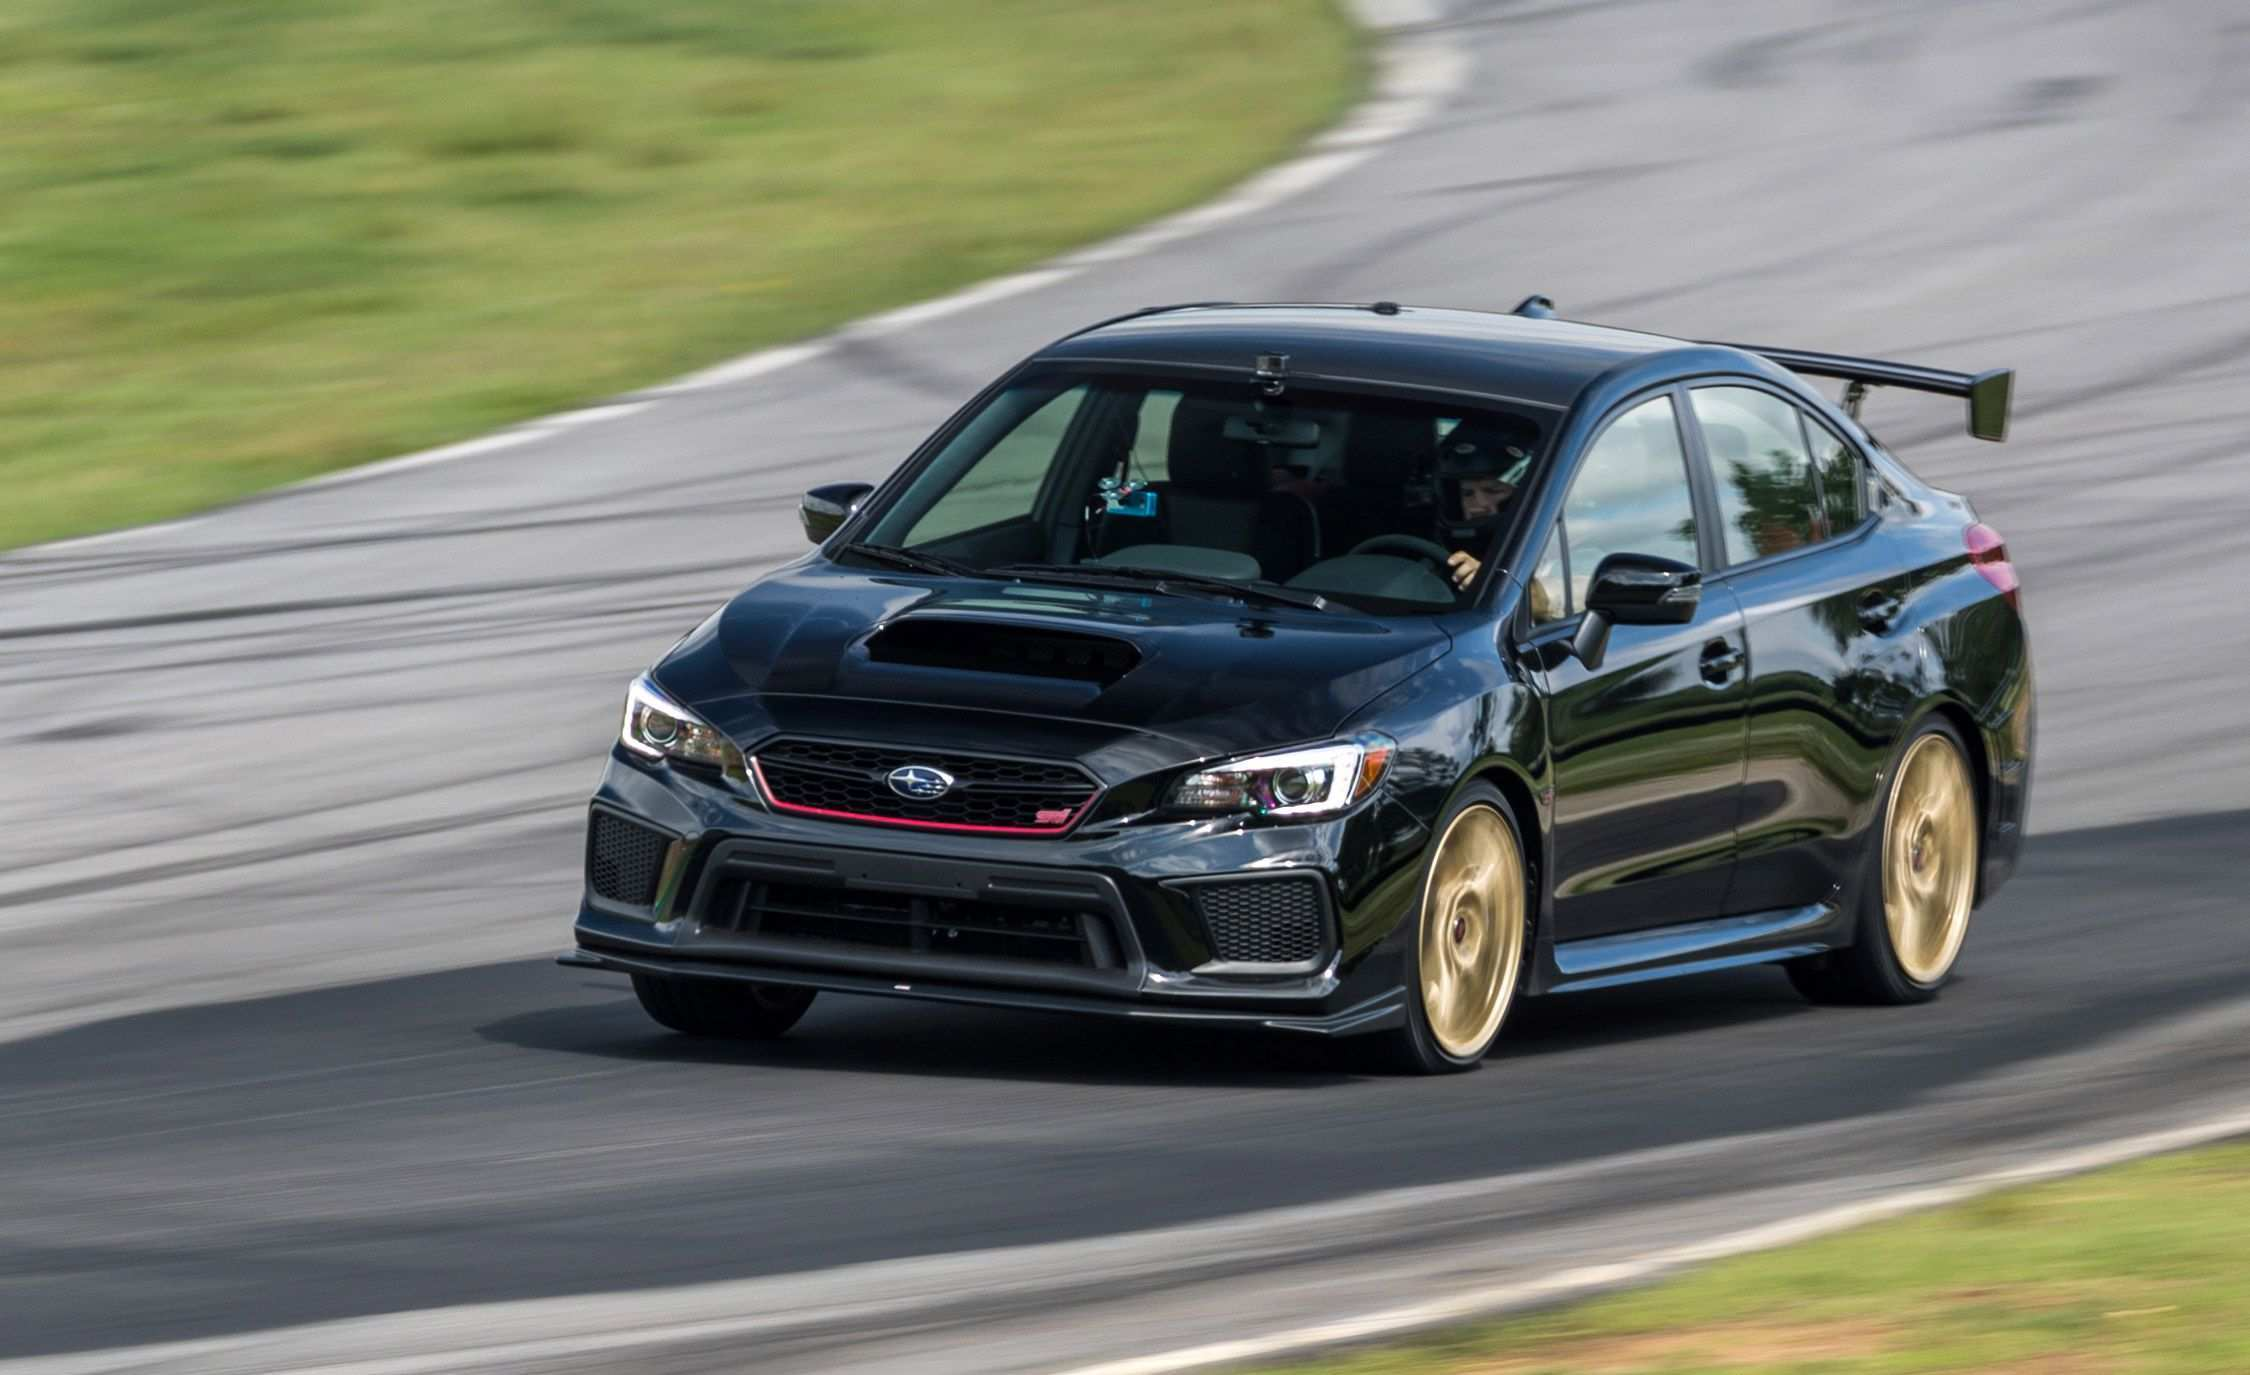 87 All New The 2019 Subaru Wrx Quarter Mile Price And Review Wallpaper with The 2019 Subaru Wrx Quarter Mile Price And Review